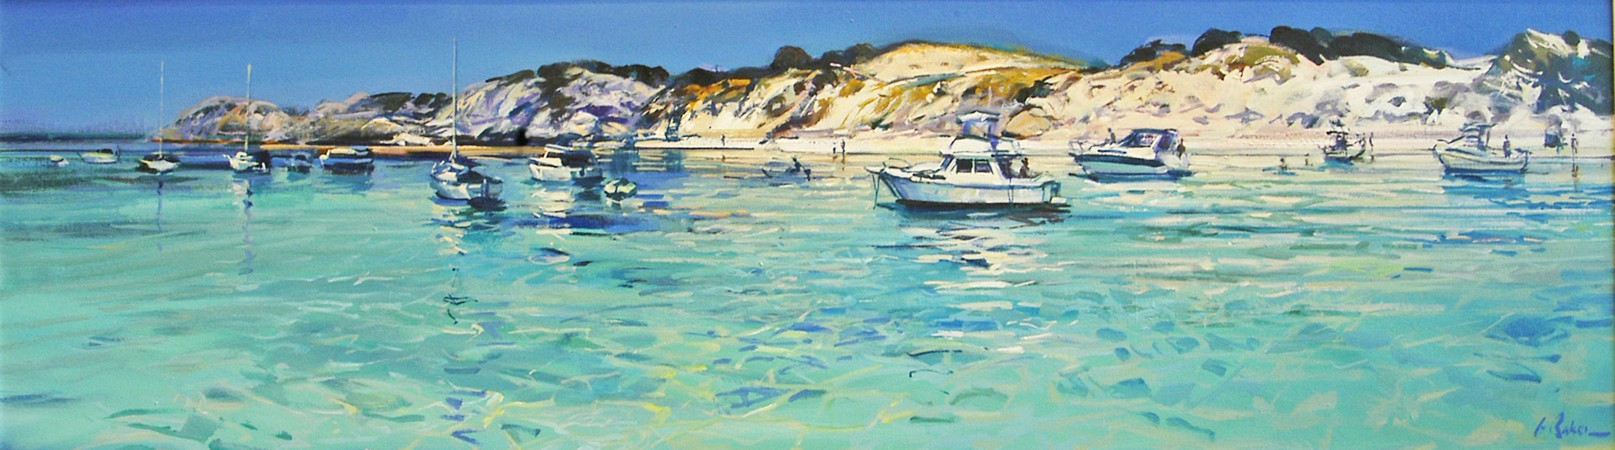 Parker Playground, Rottnest - oil on canvas - 51 x 177cm - SOLD